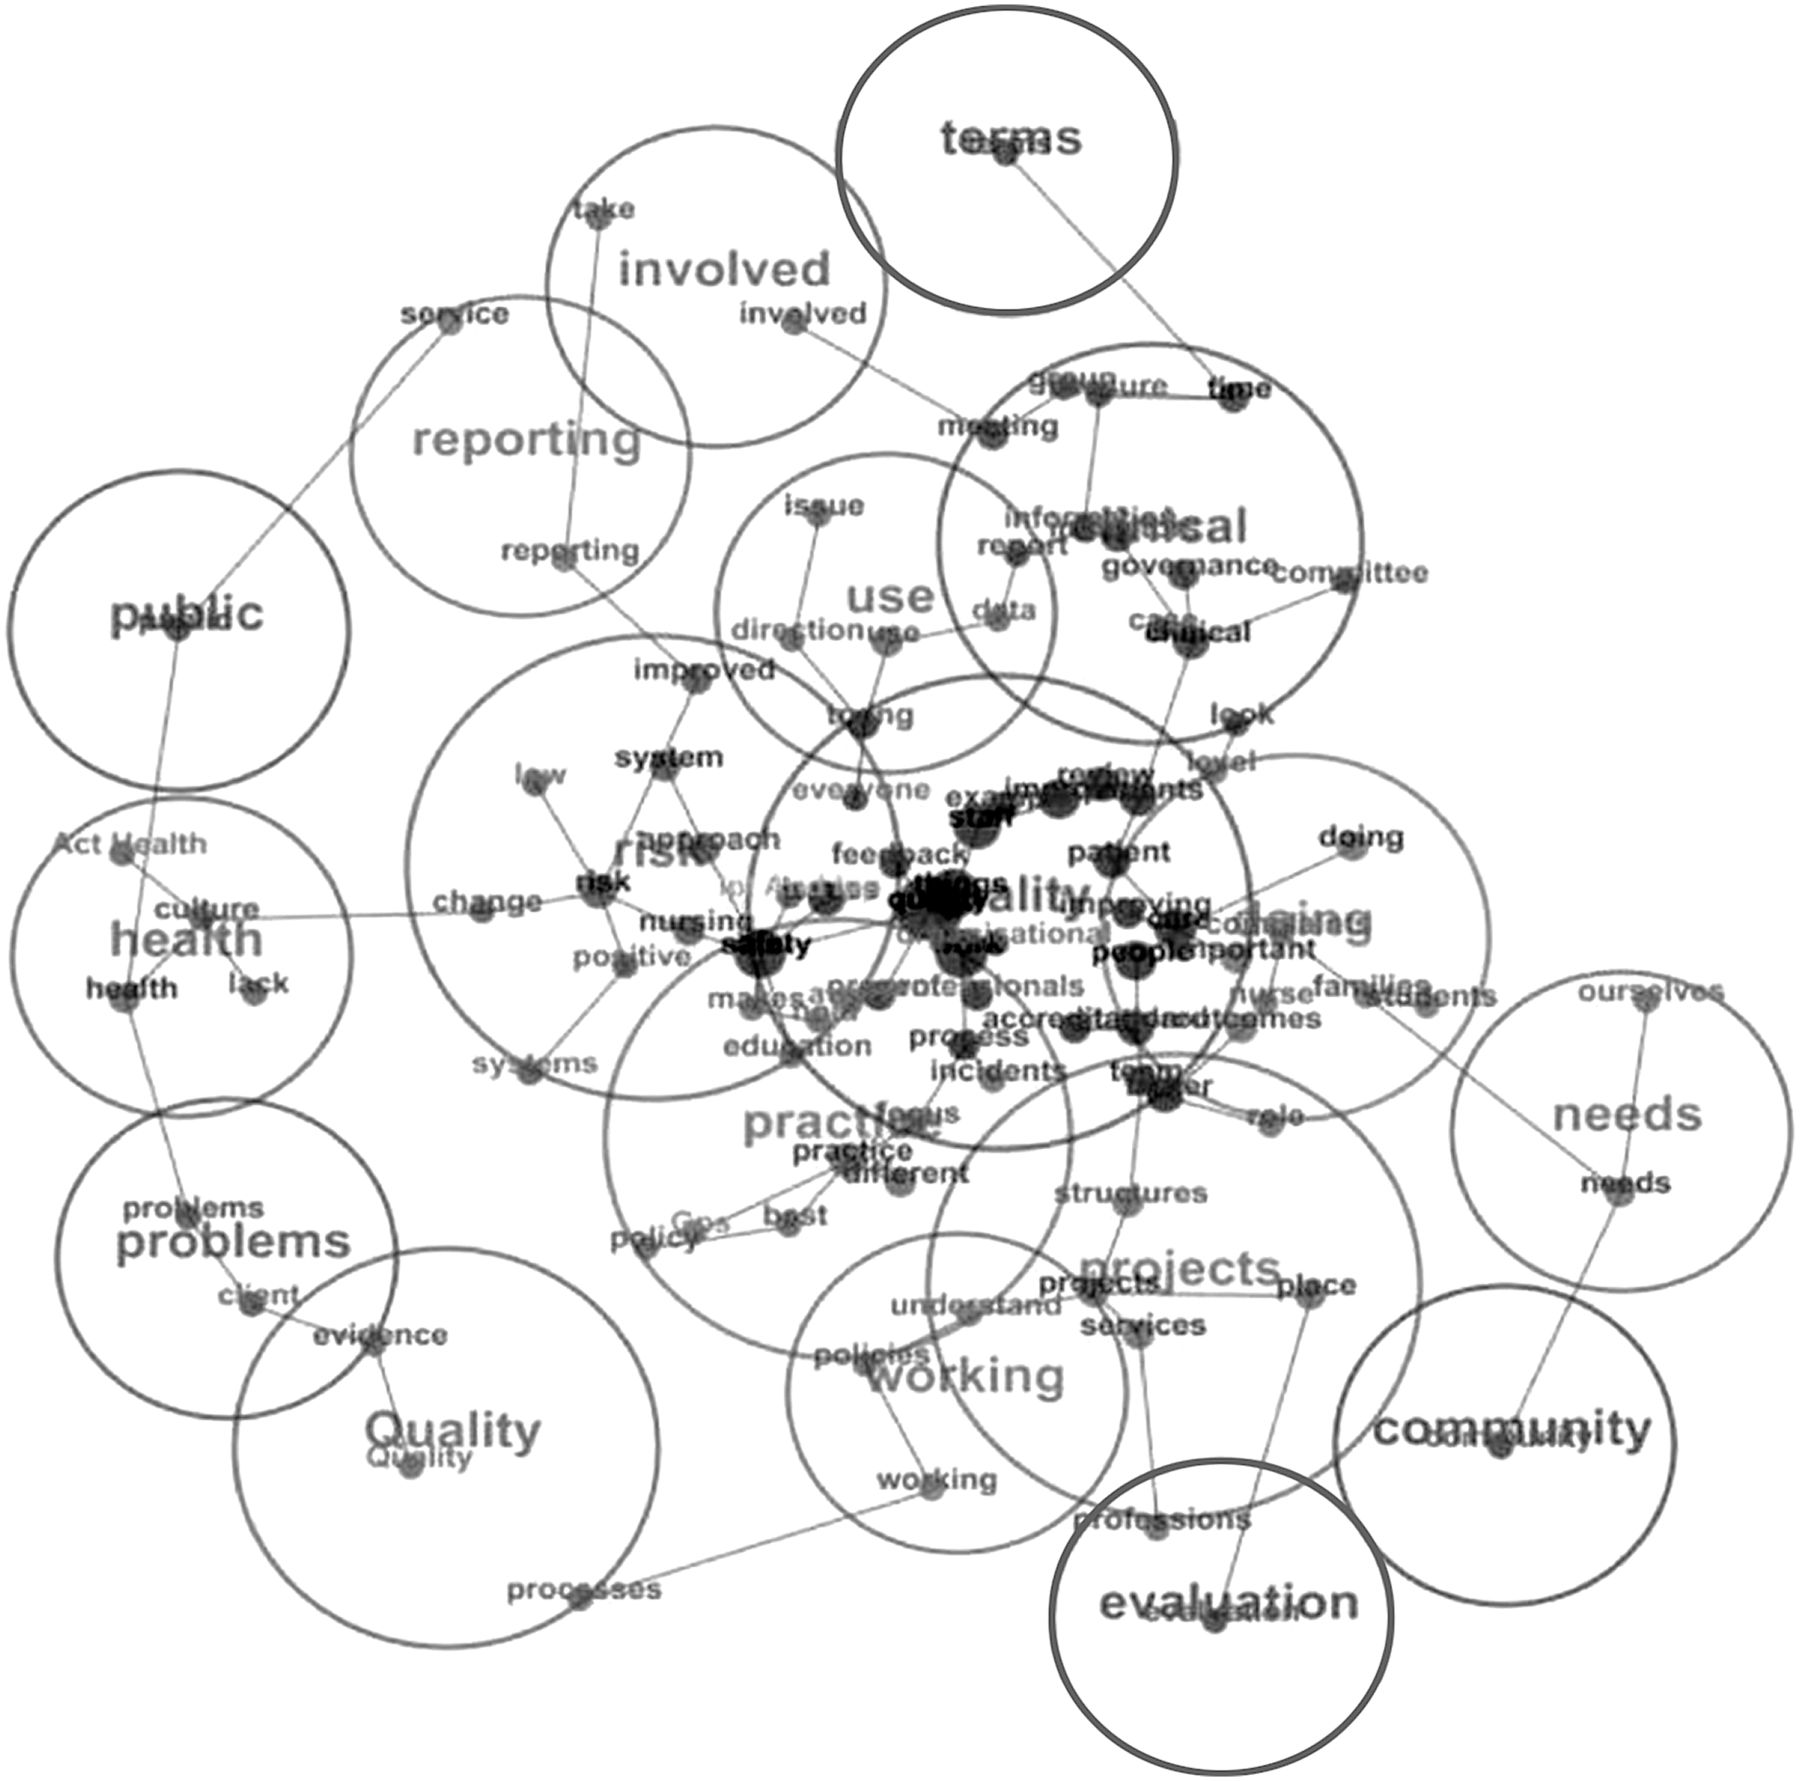 Visualising differences in professionals' perspectives on